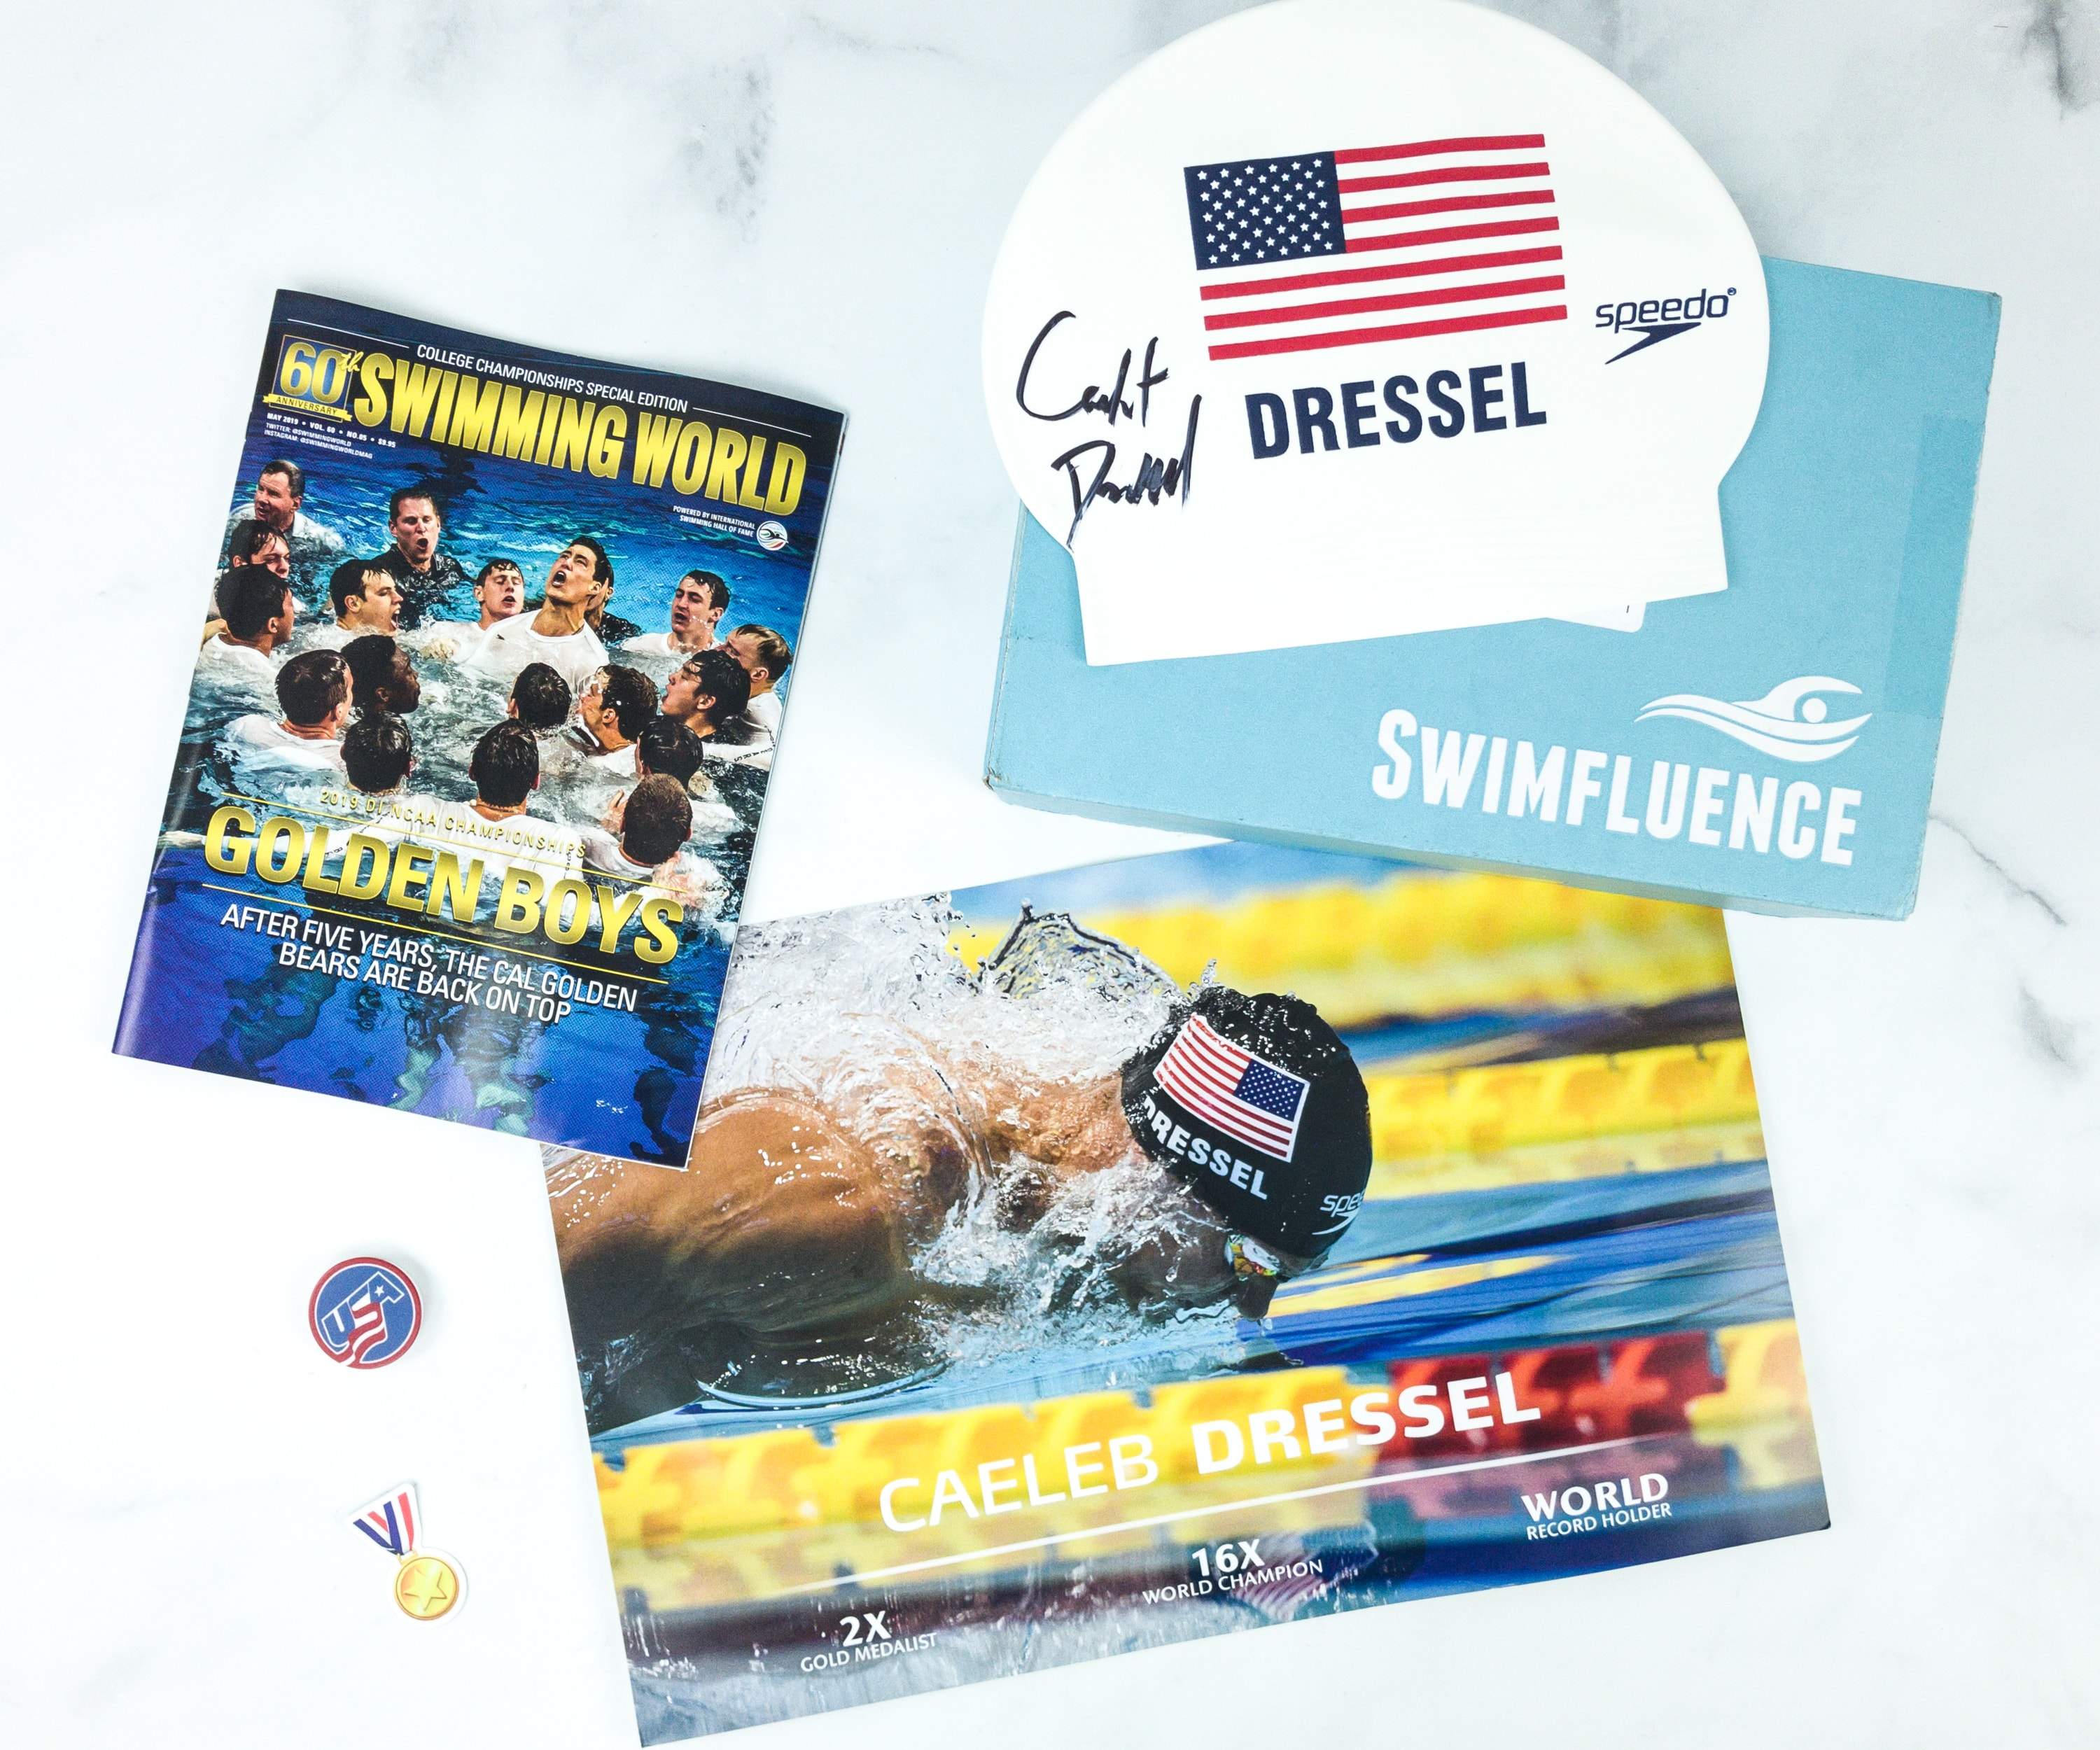 Swimfluence May 2019 Subscription Box Review